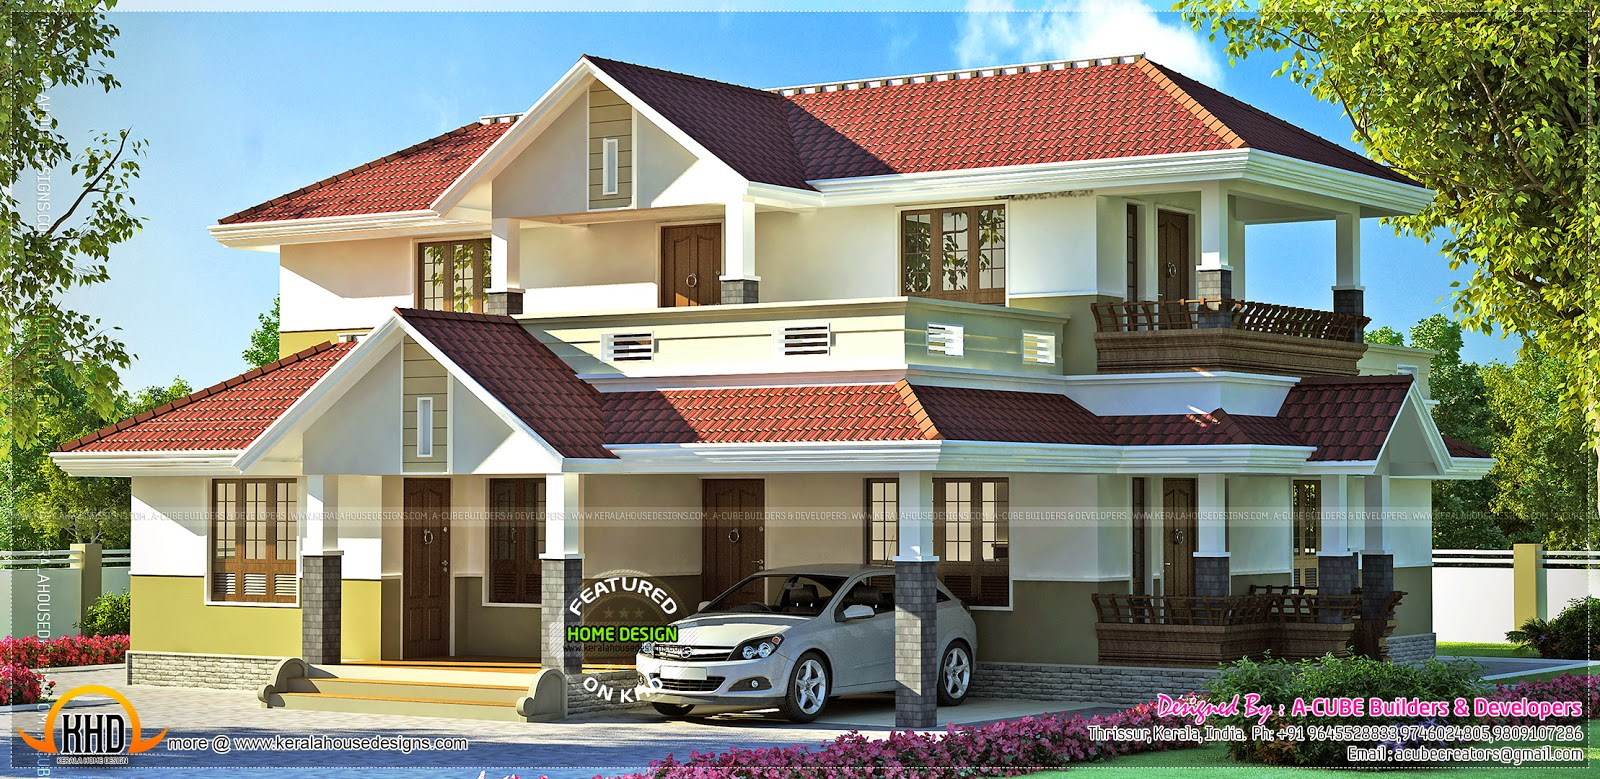 Awesome house renderings in different styles kerala home for Different style house plans